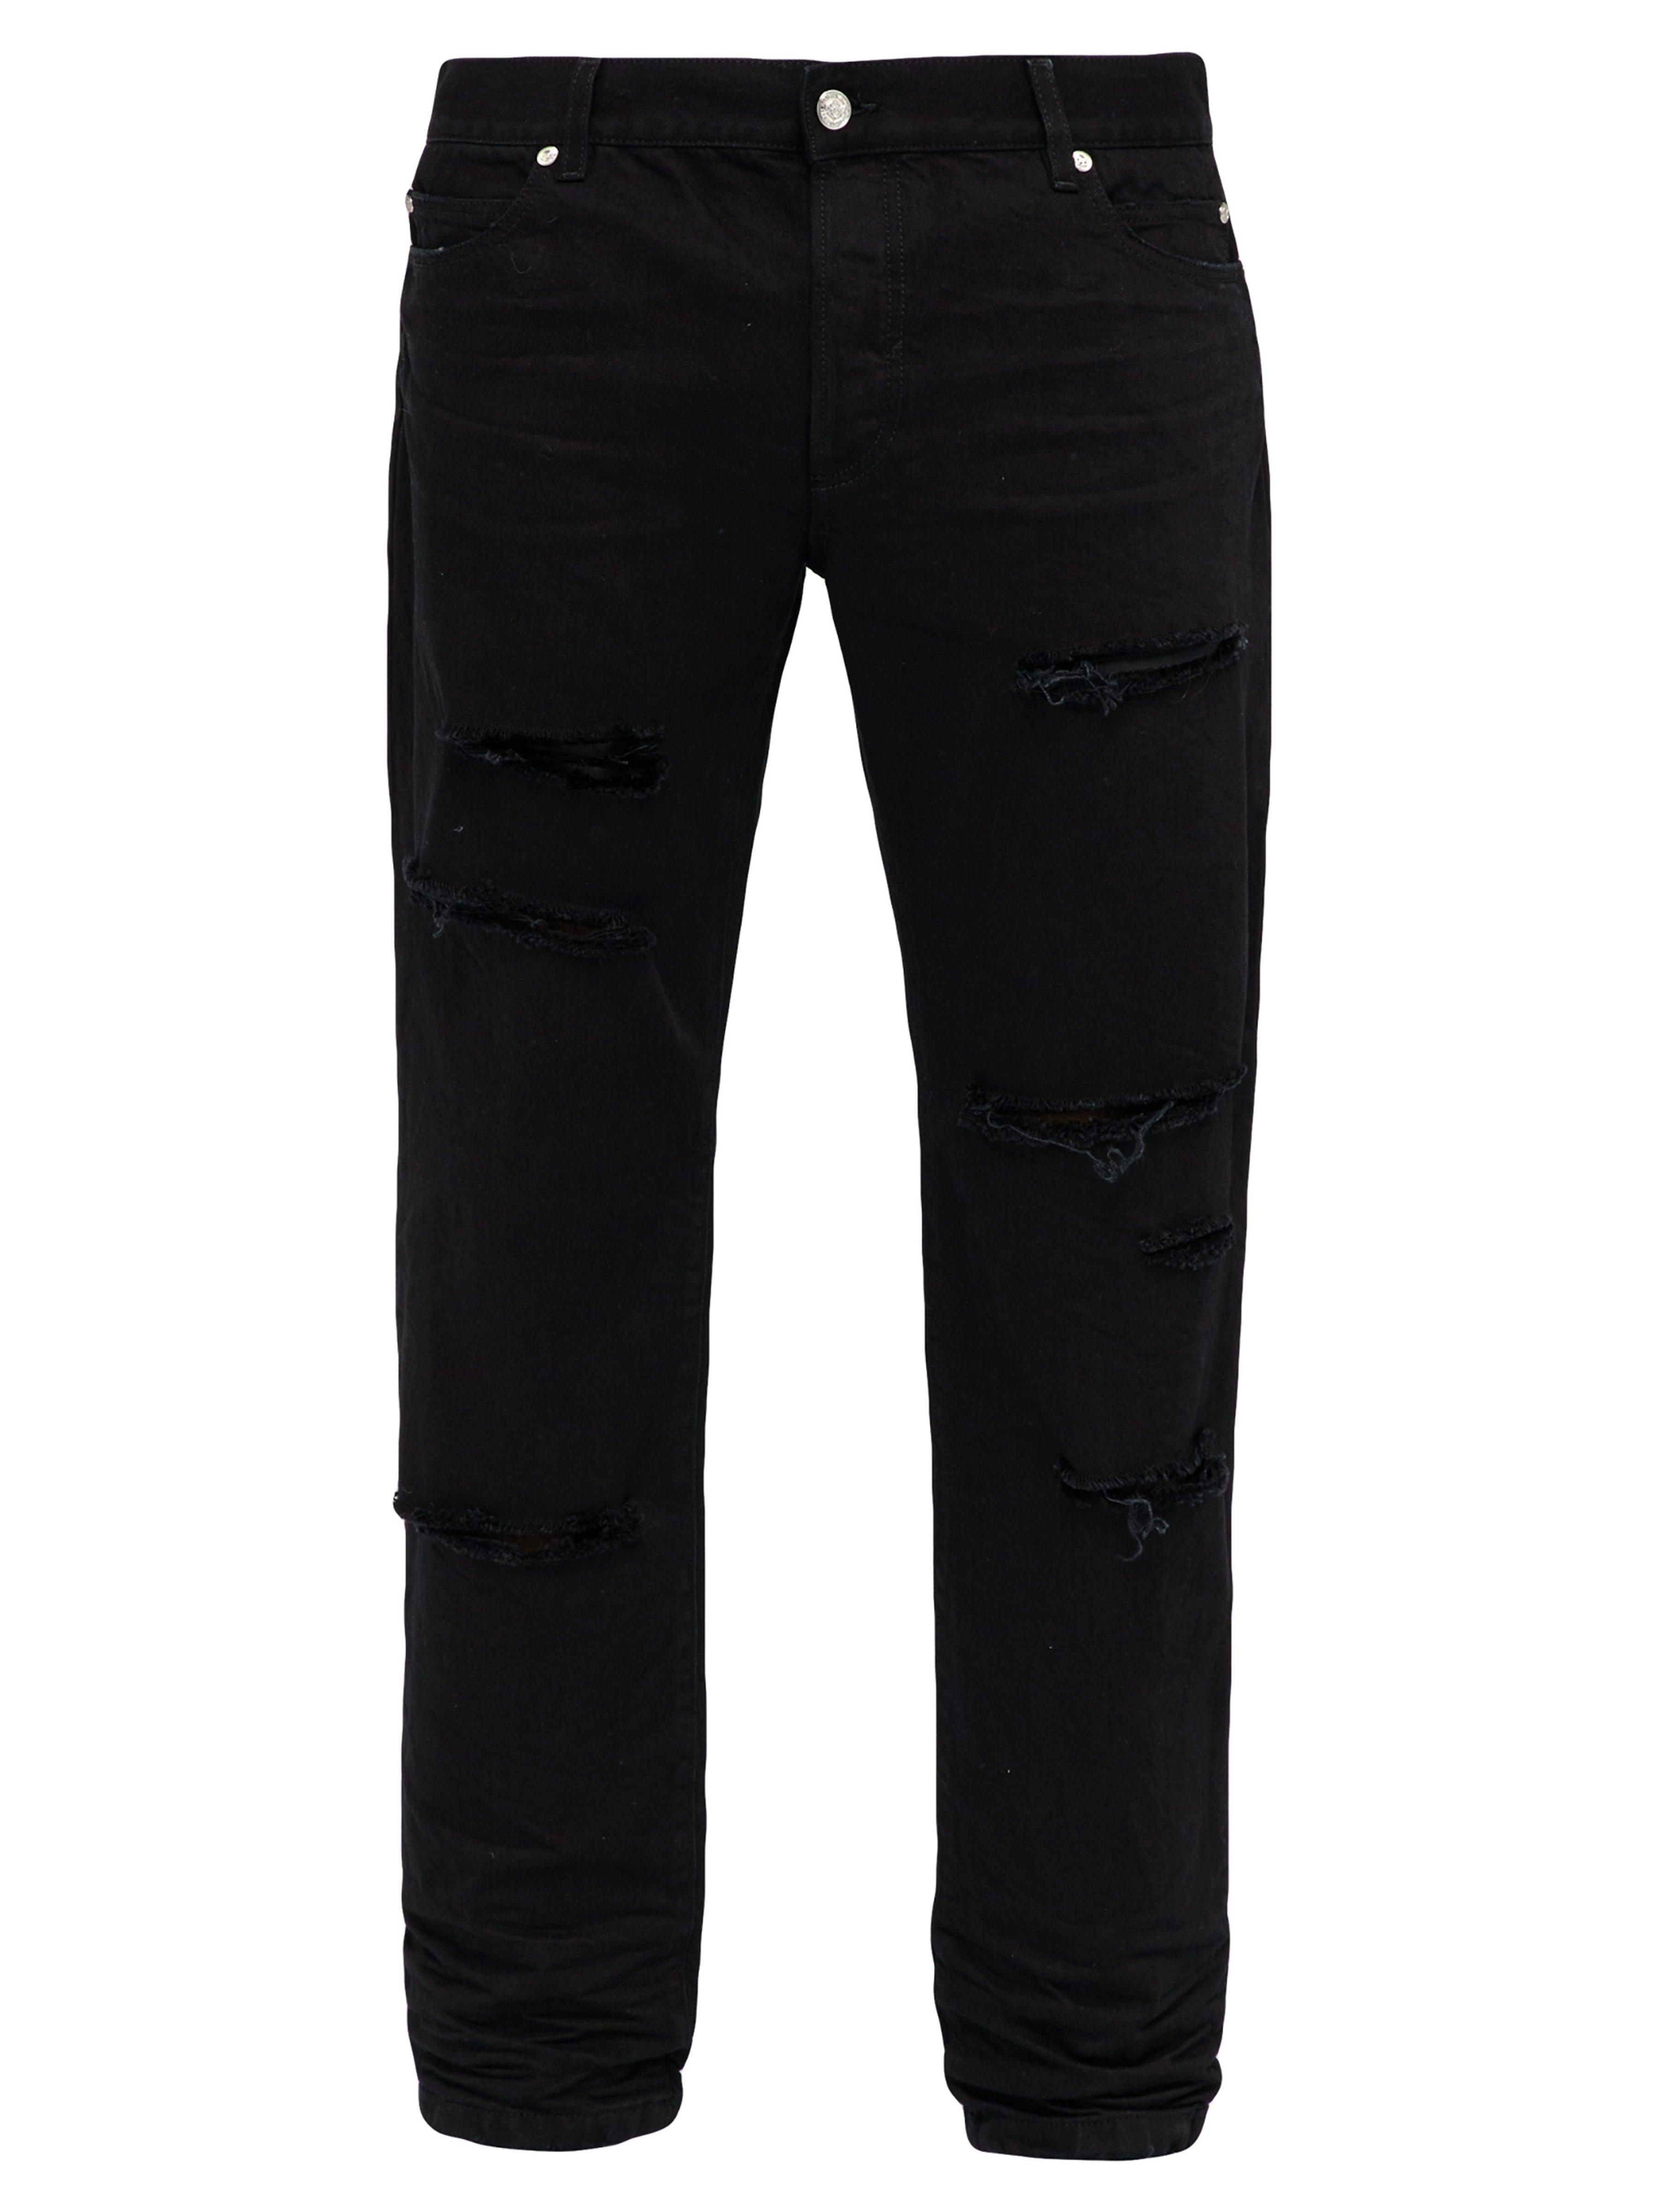 ed173daa Balmain Ripped Mid Rise Straight Leg Jeans in Black for Men - Lyst